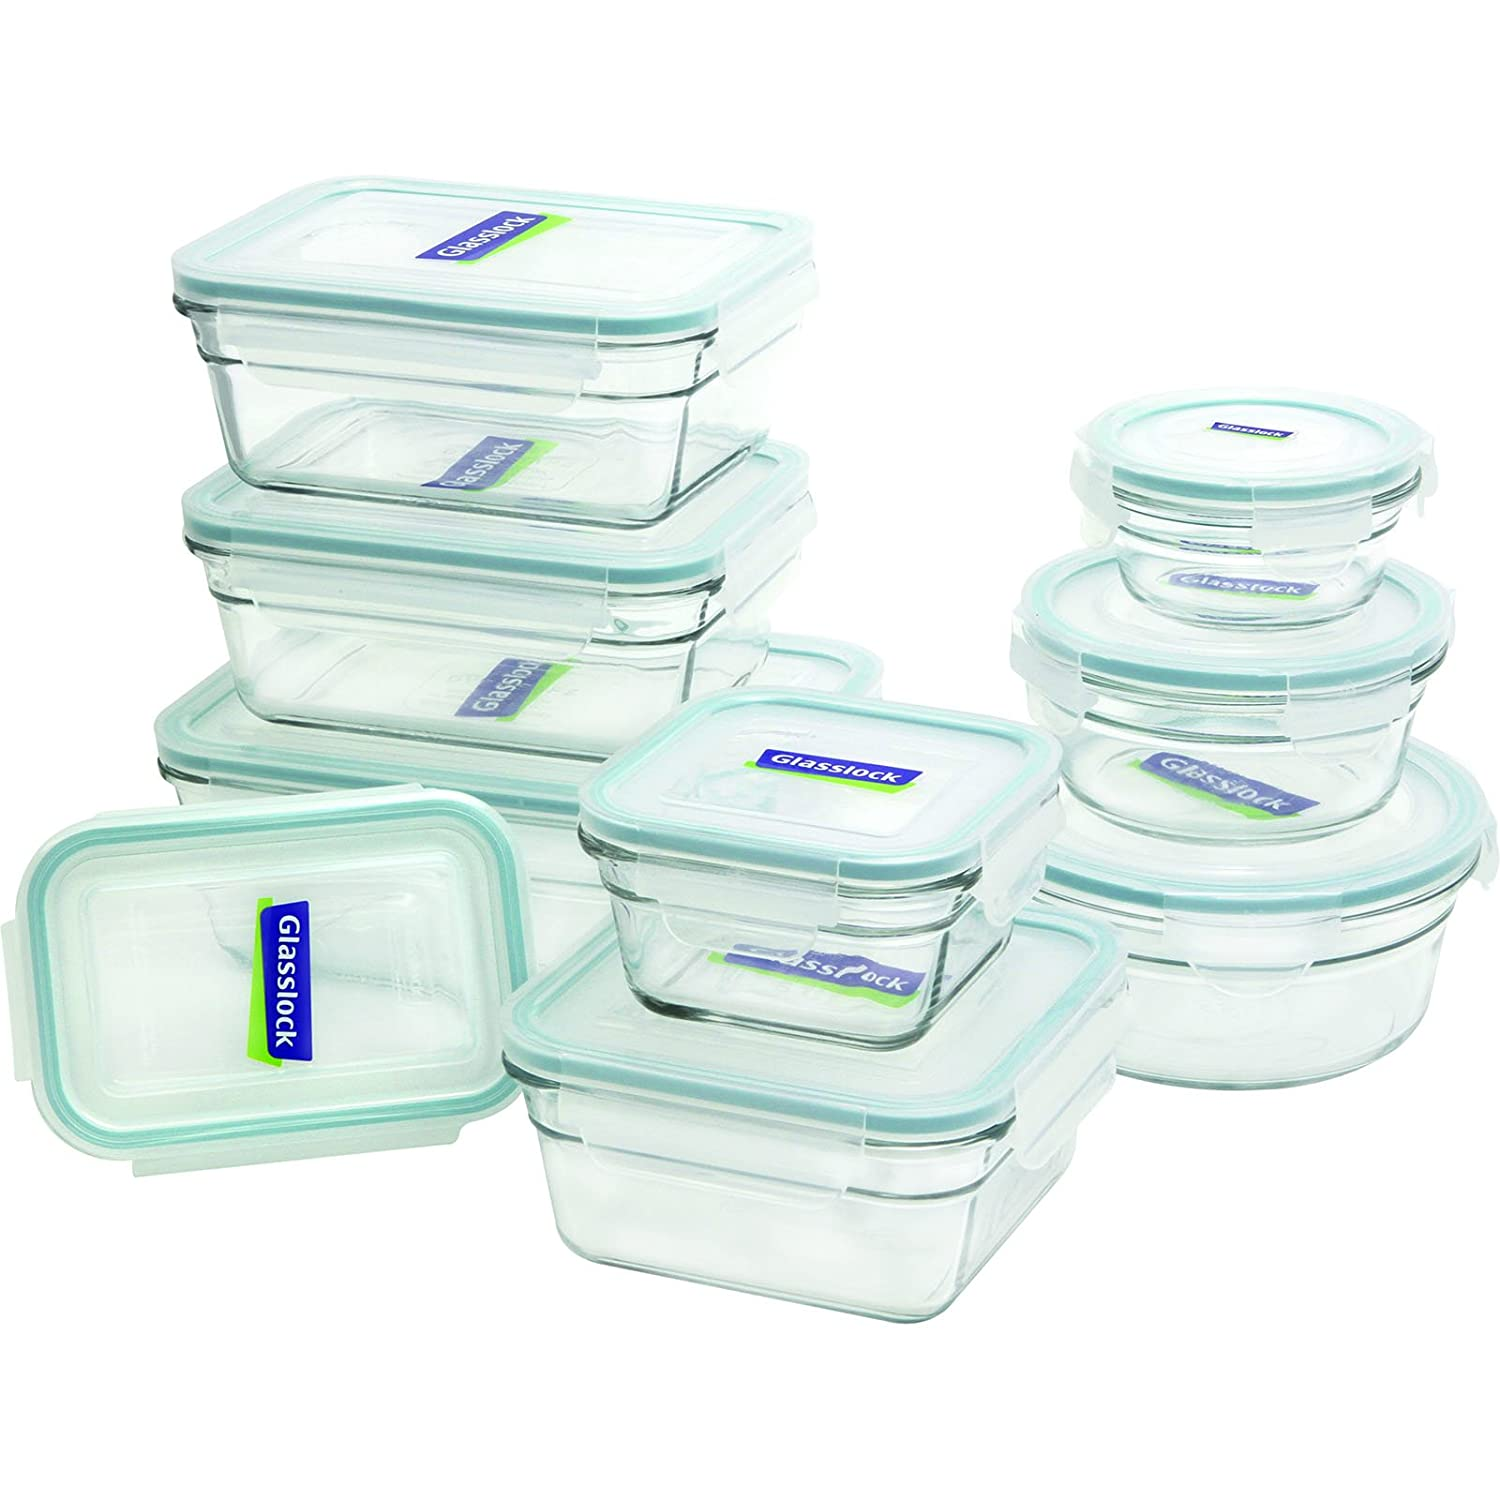 Glass Meal Prep Food Storage Containers With Leak-Proof Lids